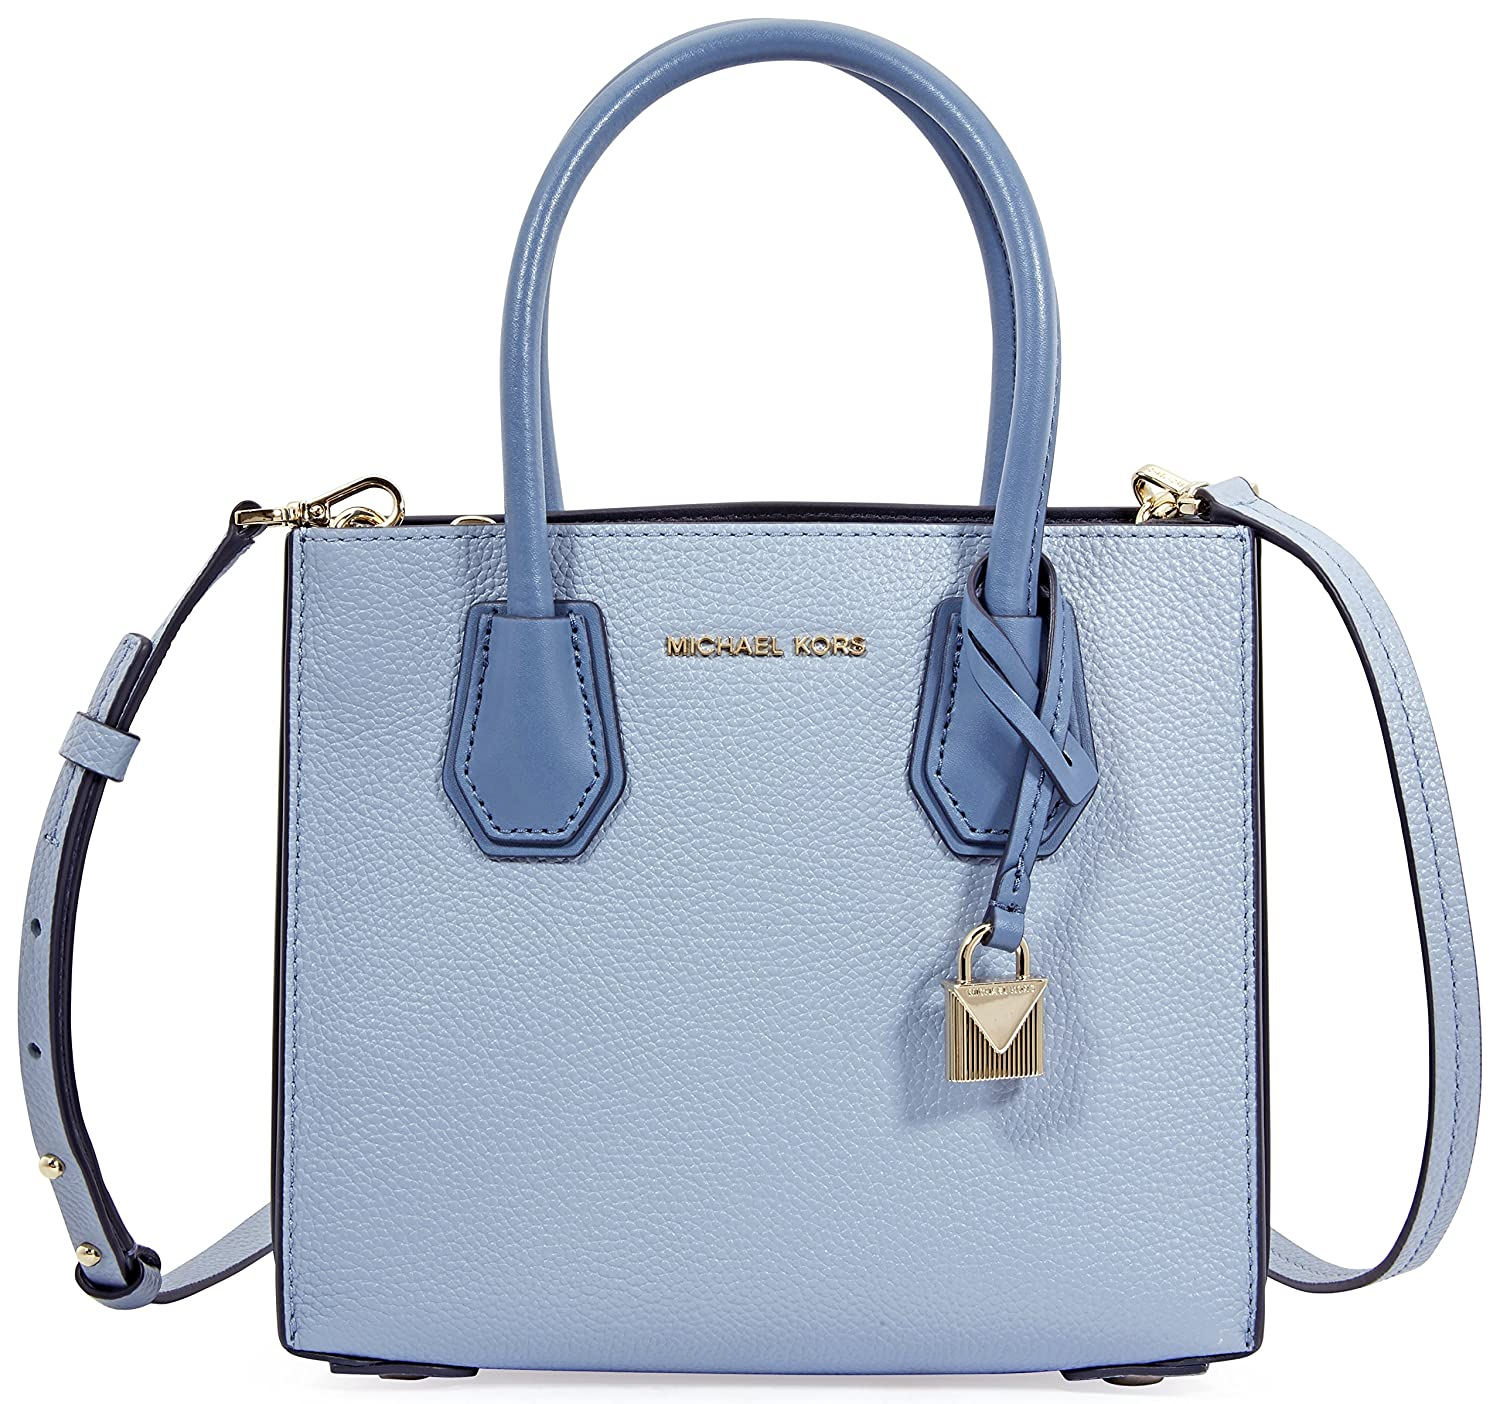 bf589acfcac7 MICHAEL by Michael Kors Mercer Pale Blue Leather Accordion Messenger Bag  one size Pale Blue  Amazon.co.uk  Shoes   Bags